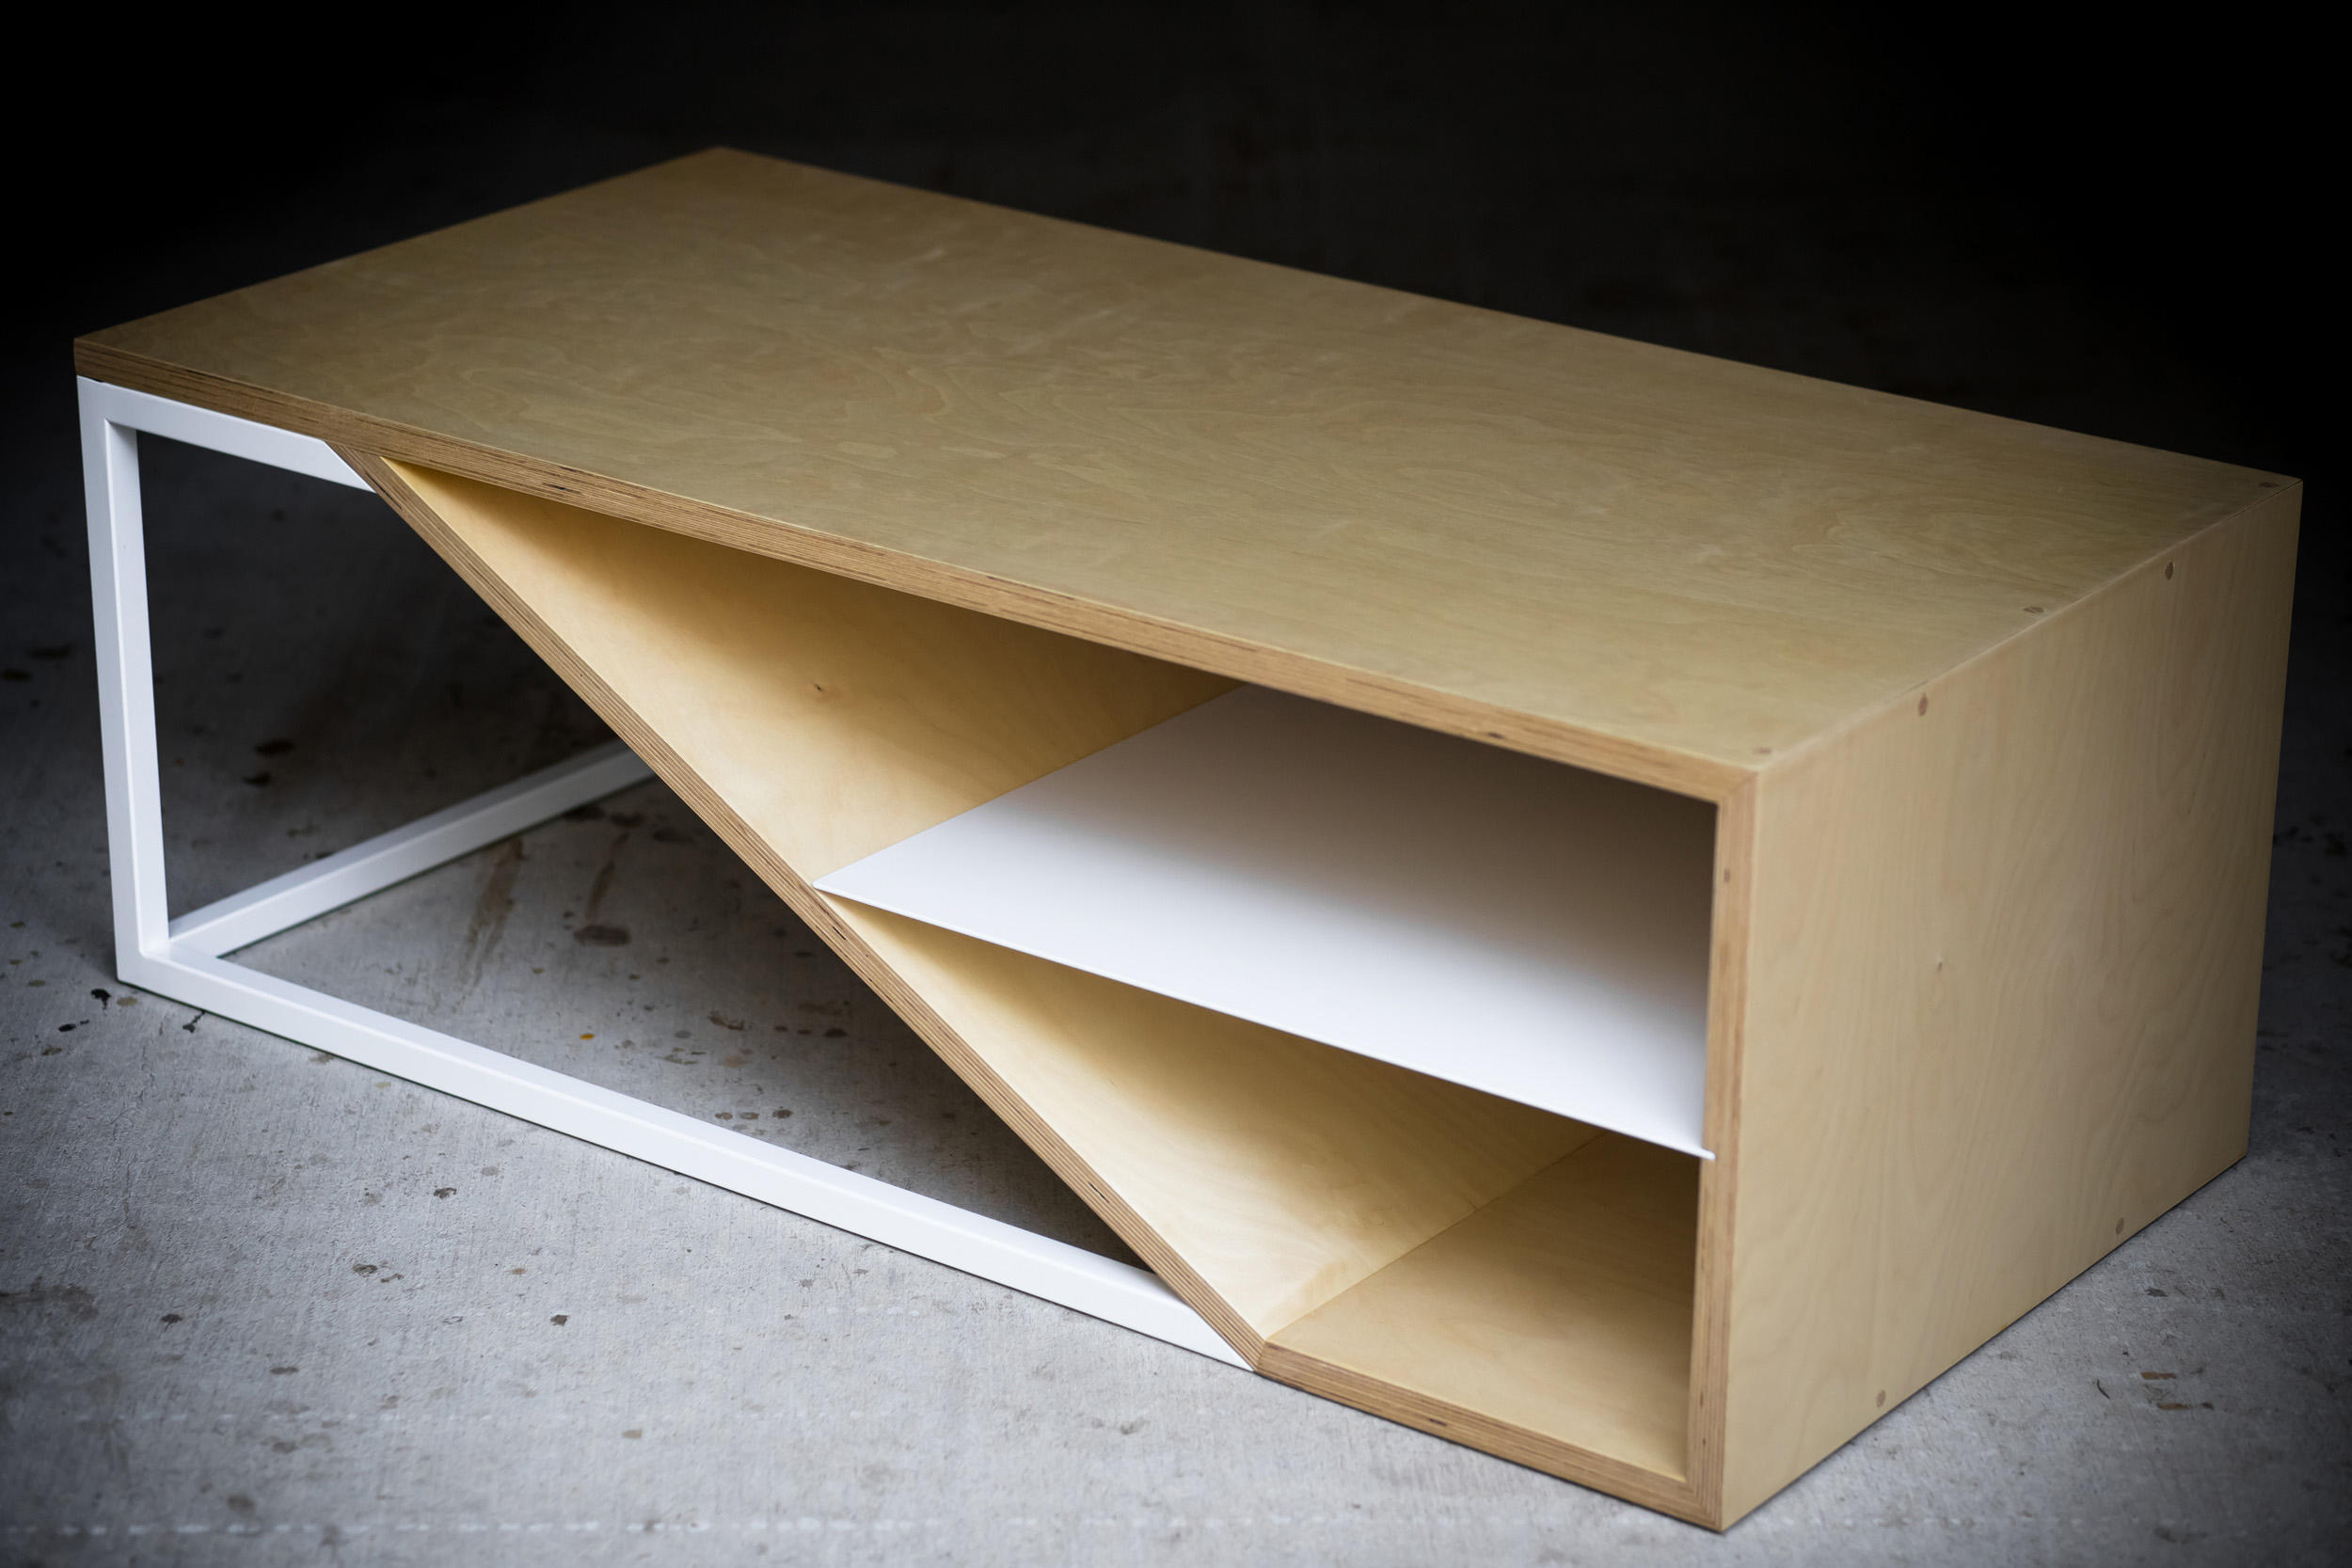 Plywood Furniture Cortado Birch Ply Coffee Tables From Harkavy Furniture Architonic